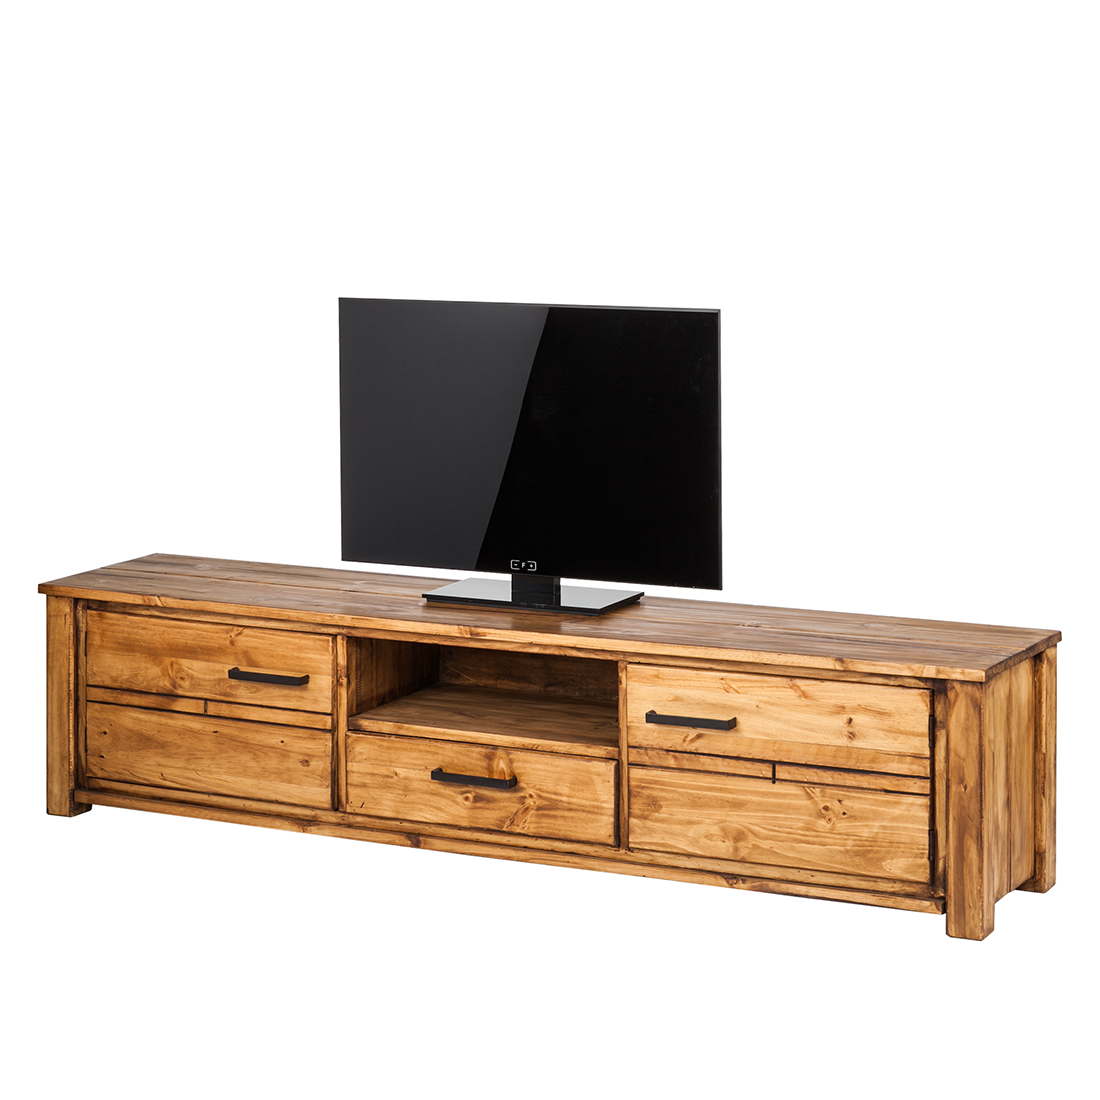 lowboard pinie massivholz 205cm fernsehtisch sideboard tv rack schrank holz neu ebay. Black Bedroom Furniture Sets. Home Design Ideas